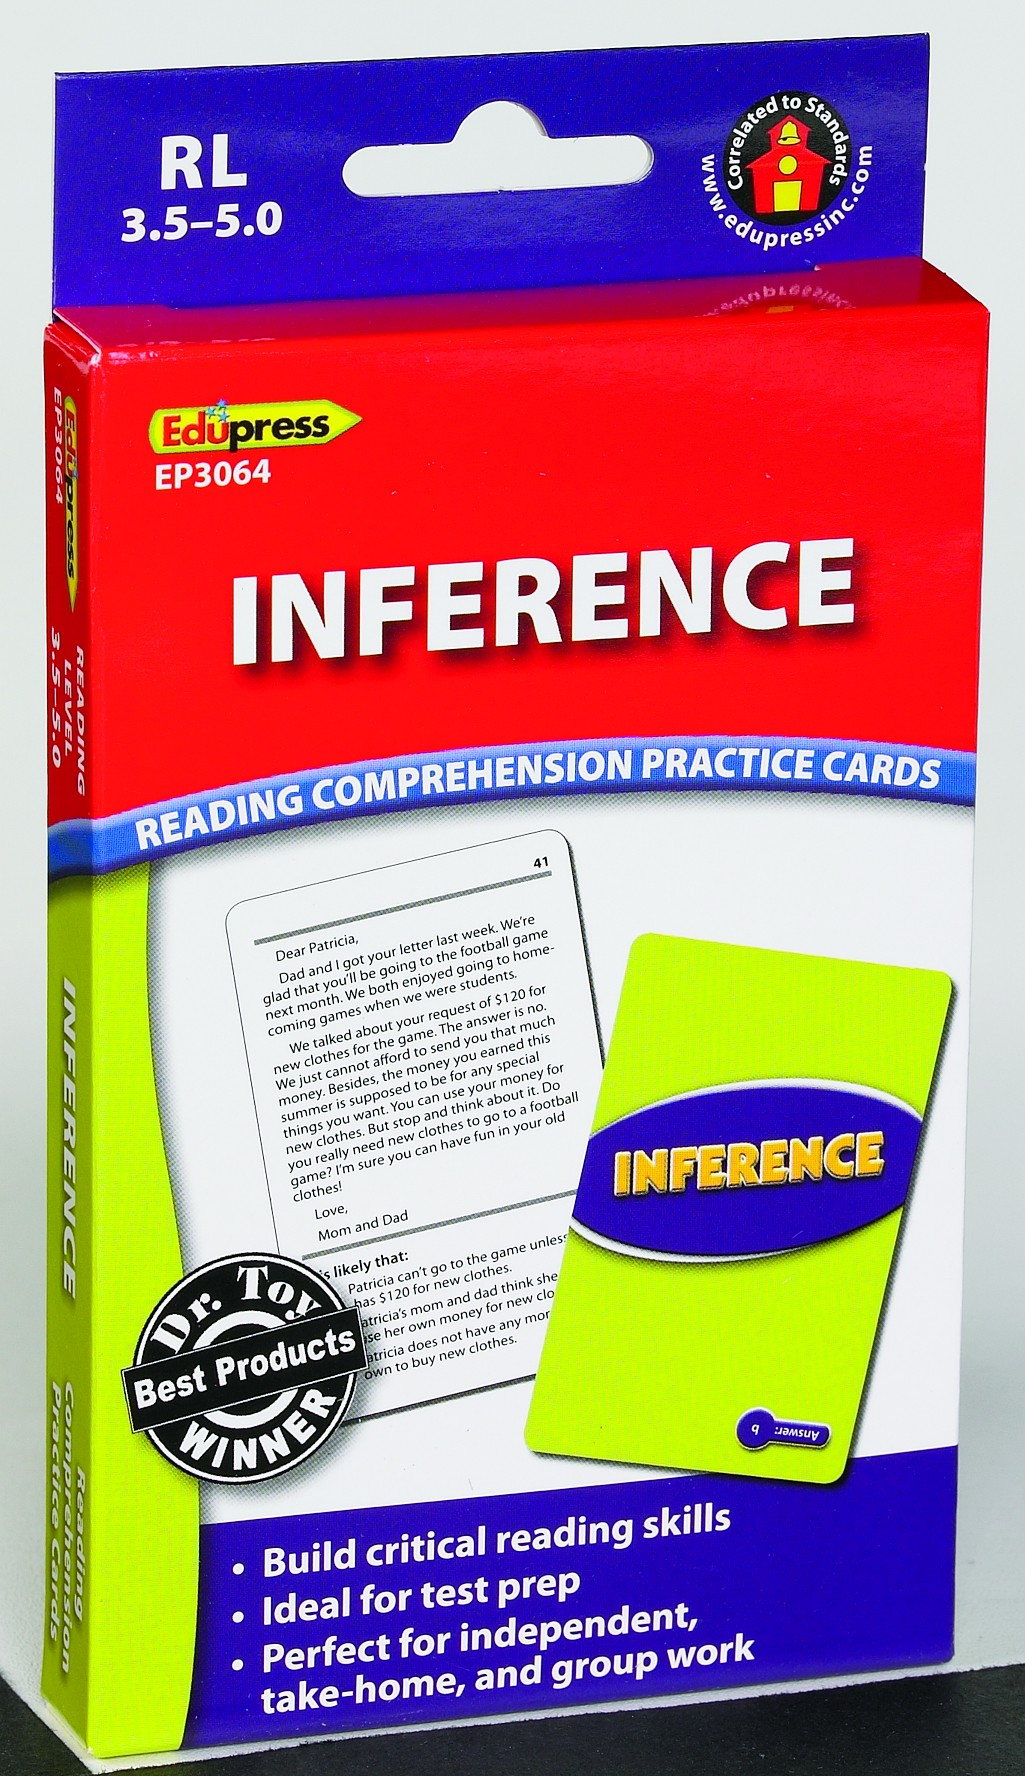 Inference Practice Cards